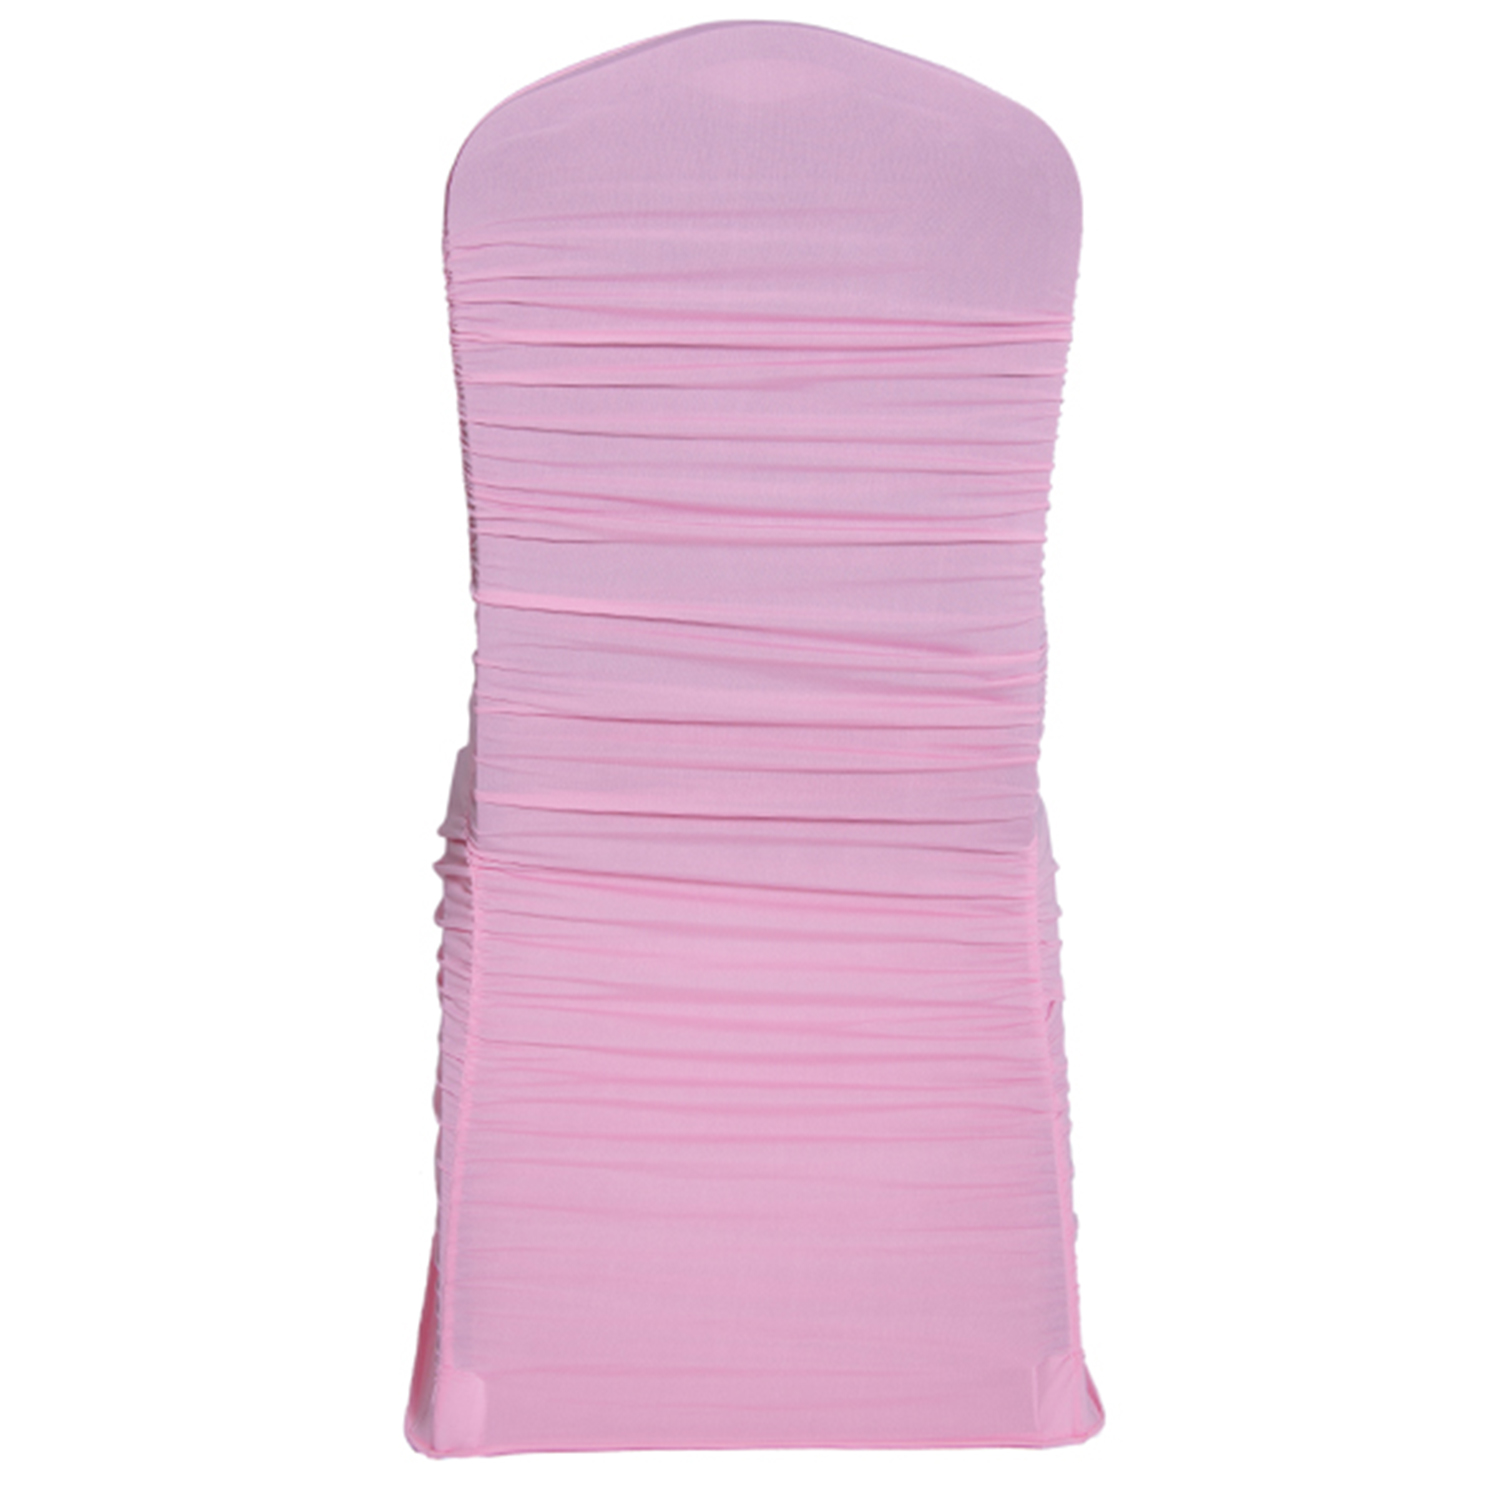 ruched chair covers the outlet keizer pink for sale cover wedding